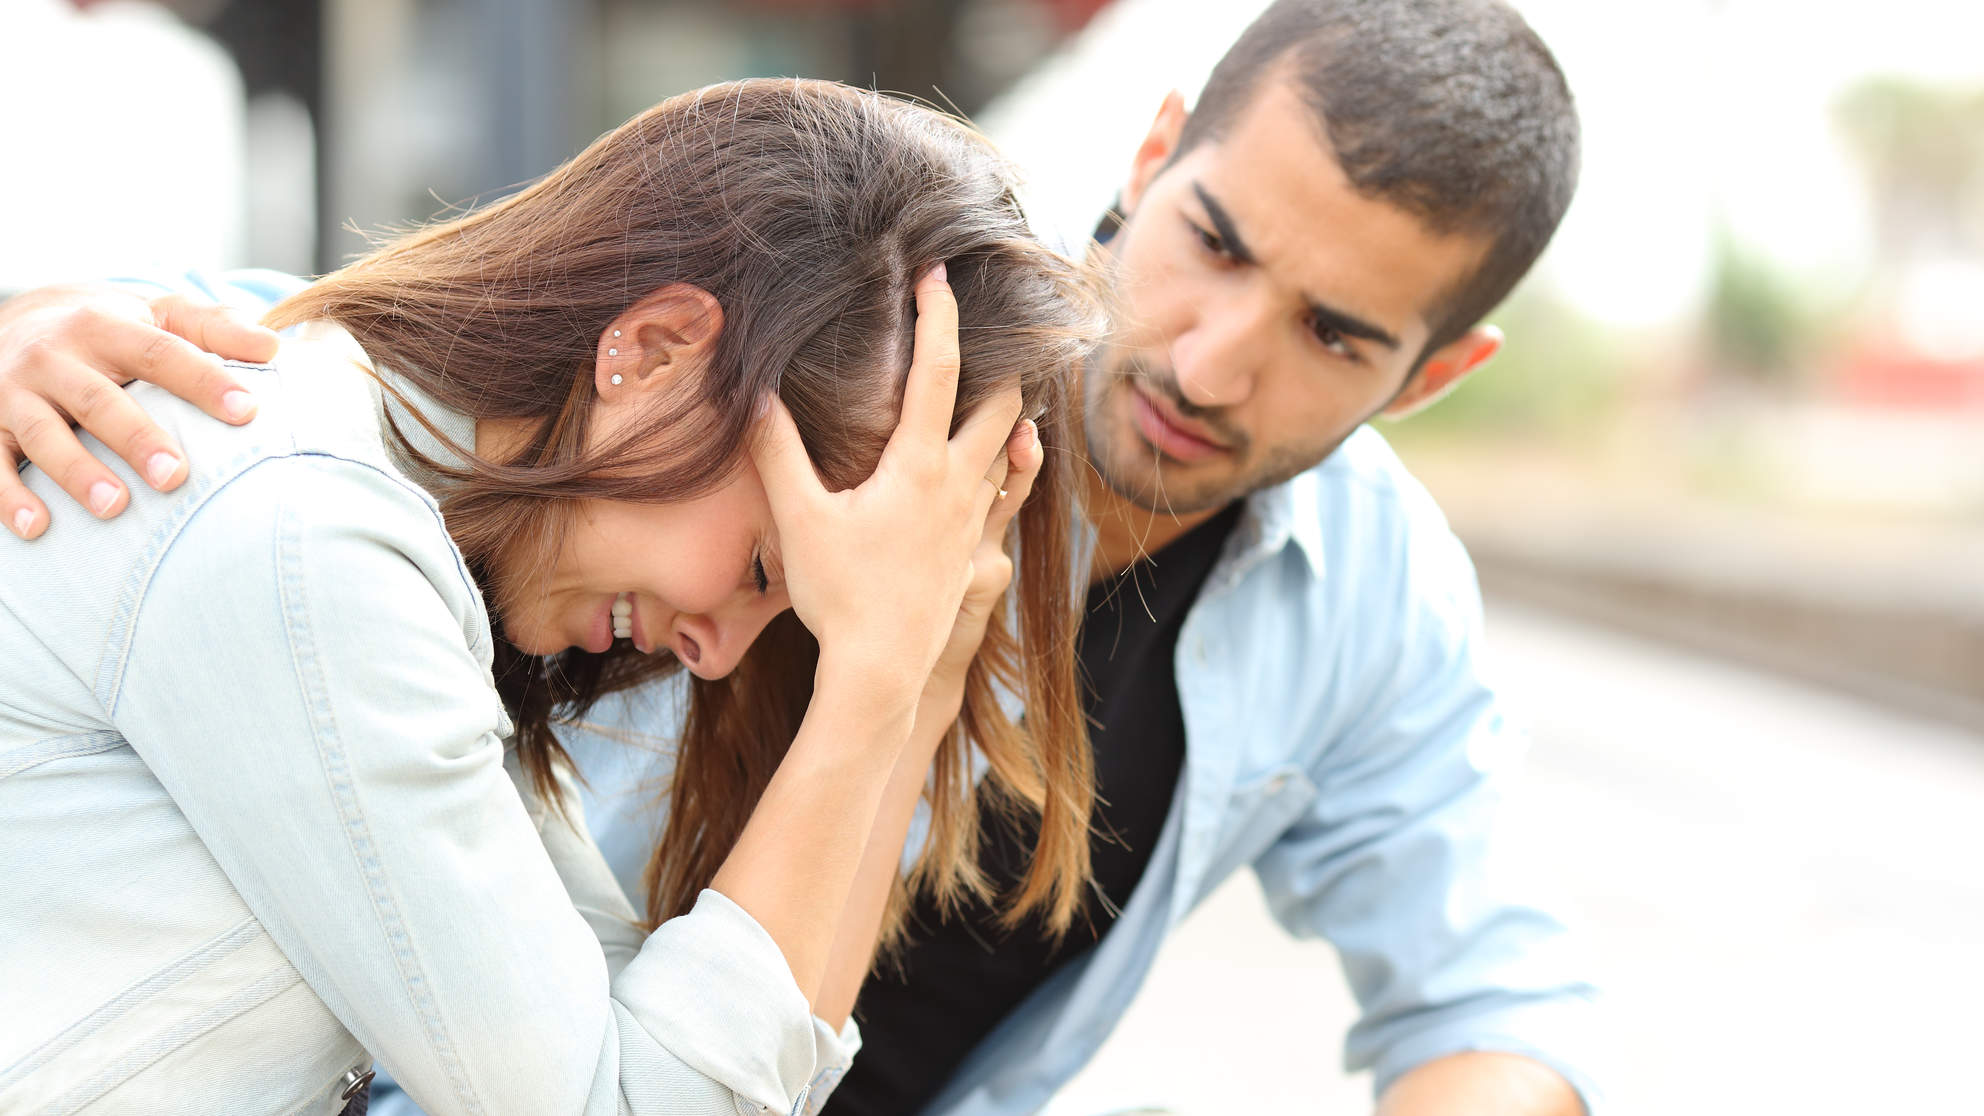 Stressed, anxious woman having a panic attack being comforted by man